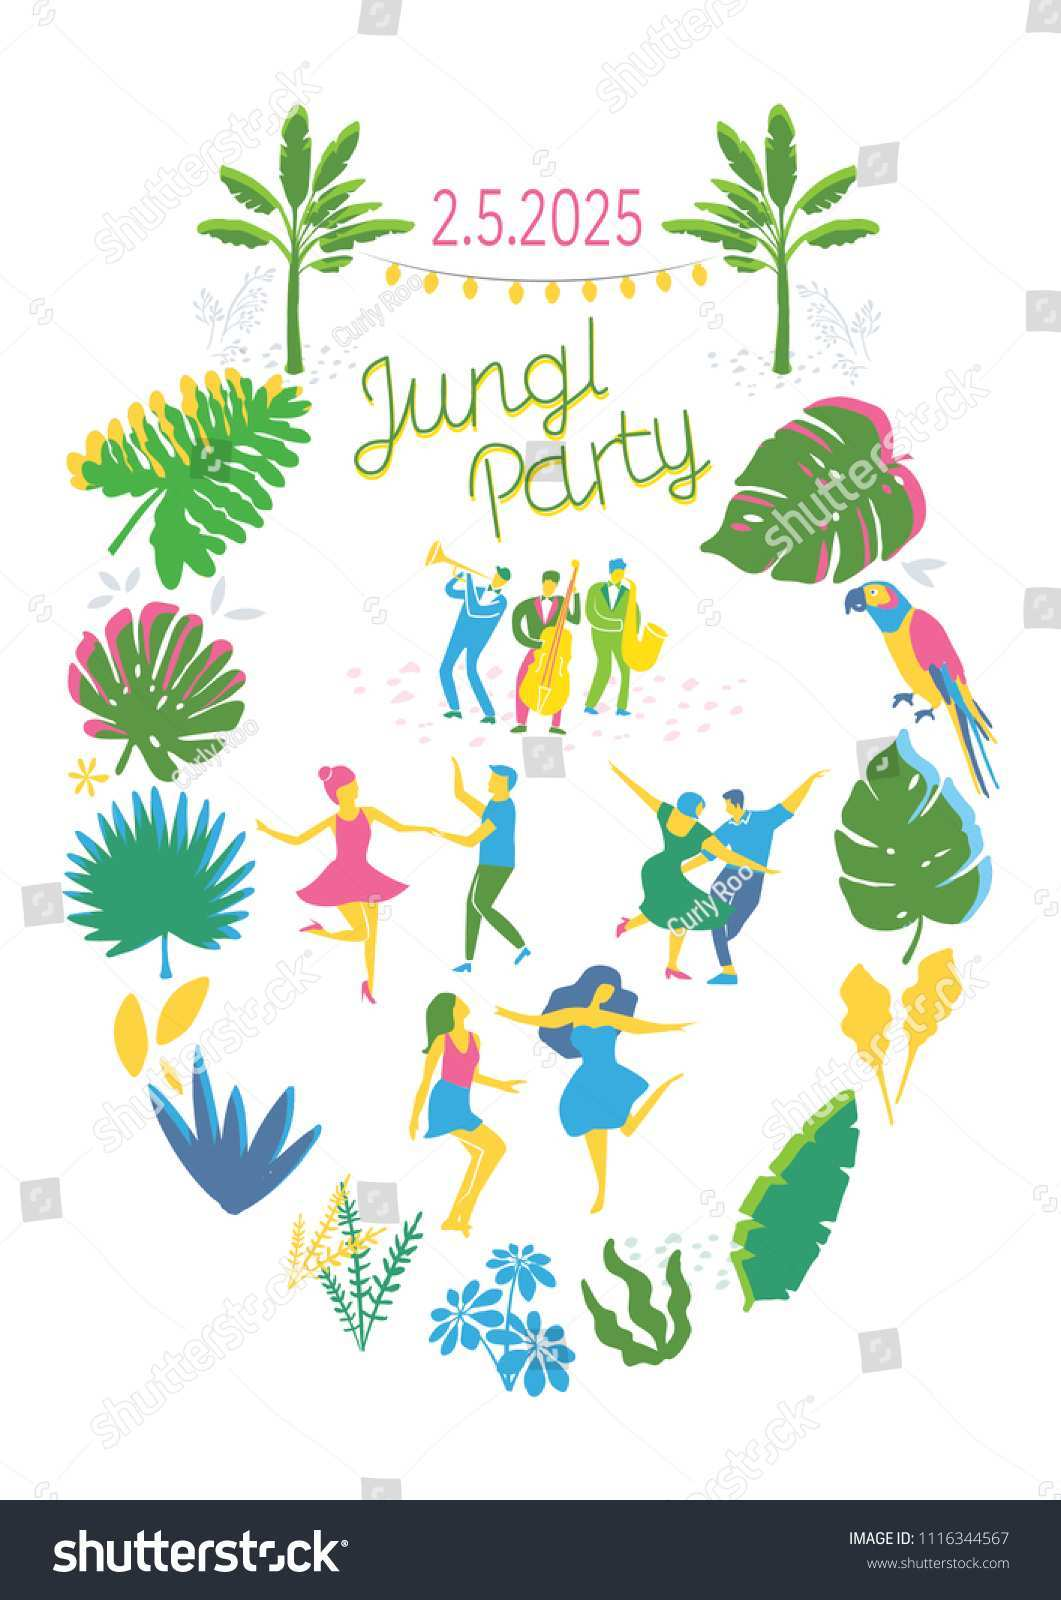 96 The Best Jungle Party Invitation Template Free Now with Jungle Party Invitation Template Free